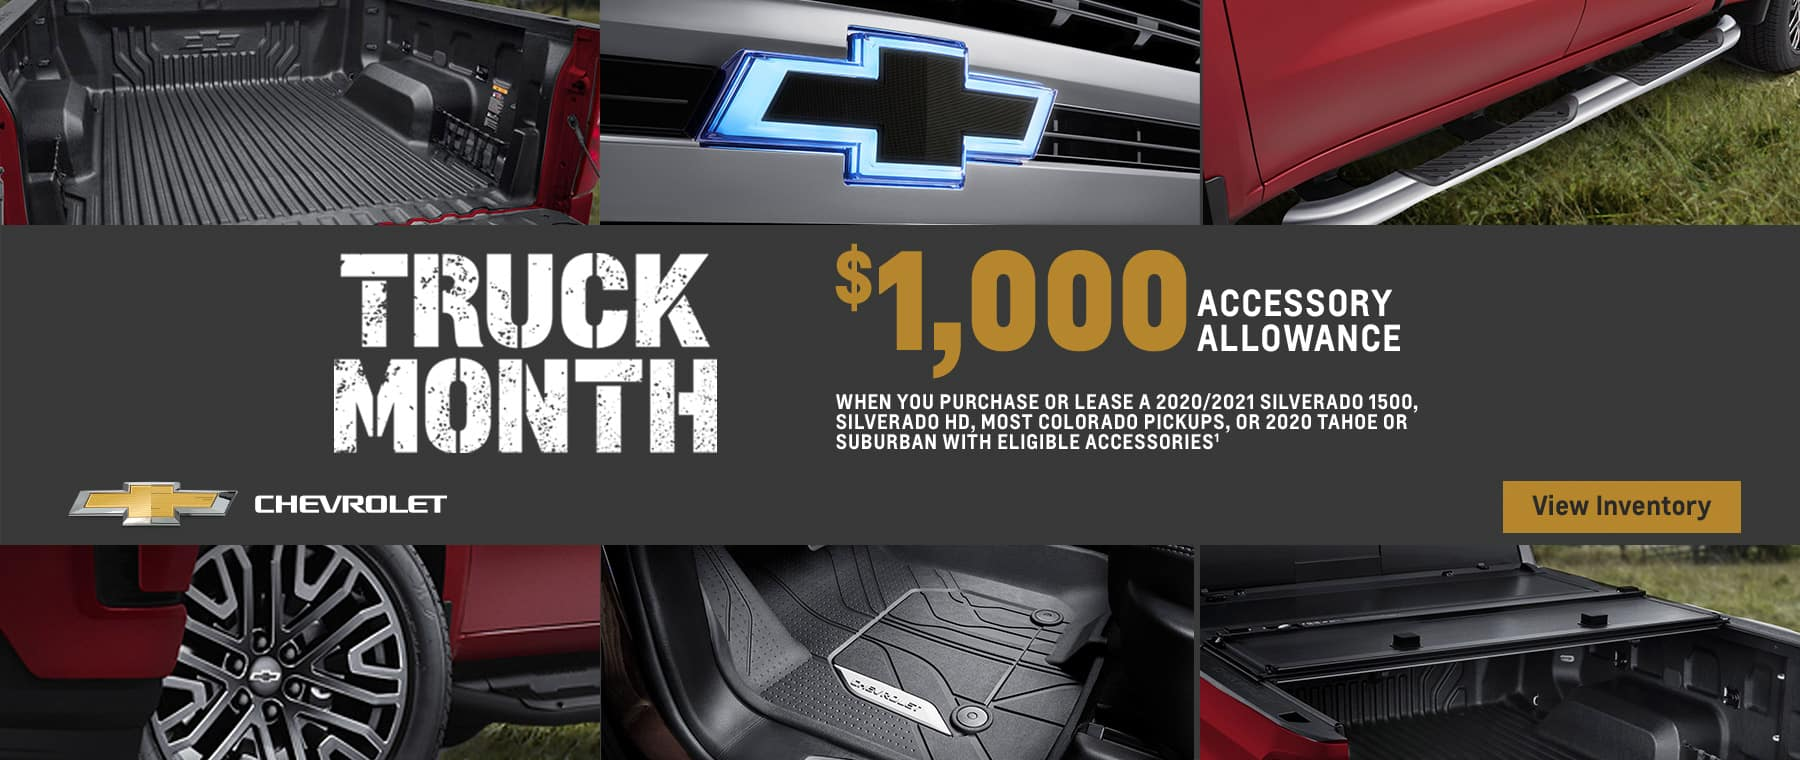 14_2020_OCTOBER_TRUCK MONTH ACCESSORIES_NATIONAL_1800x760